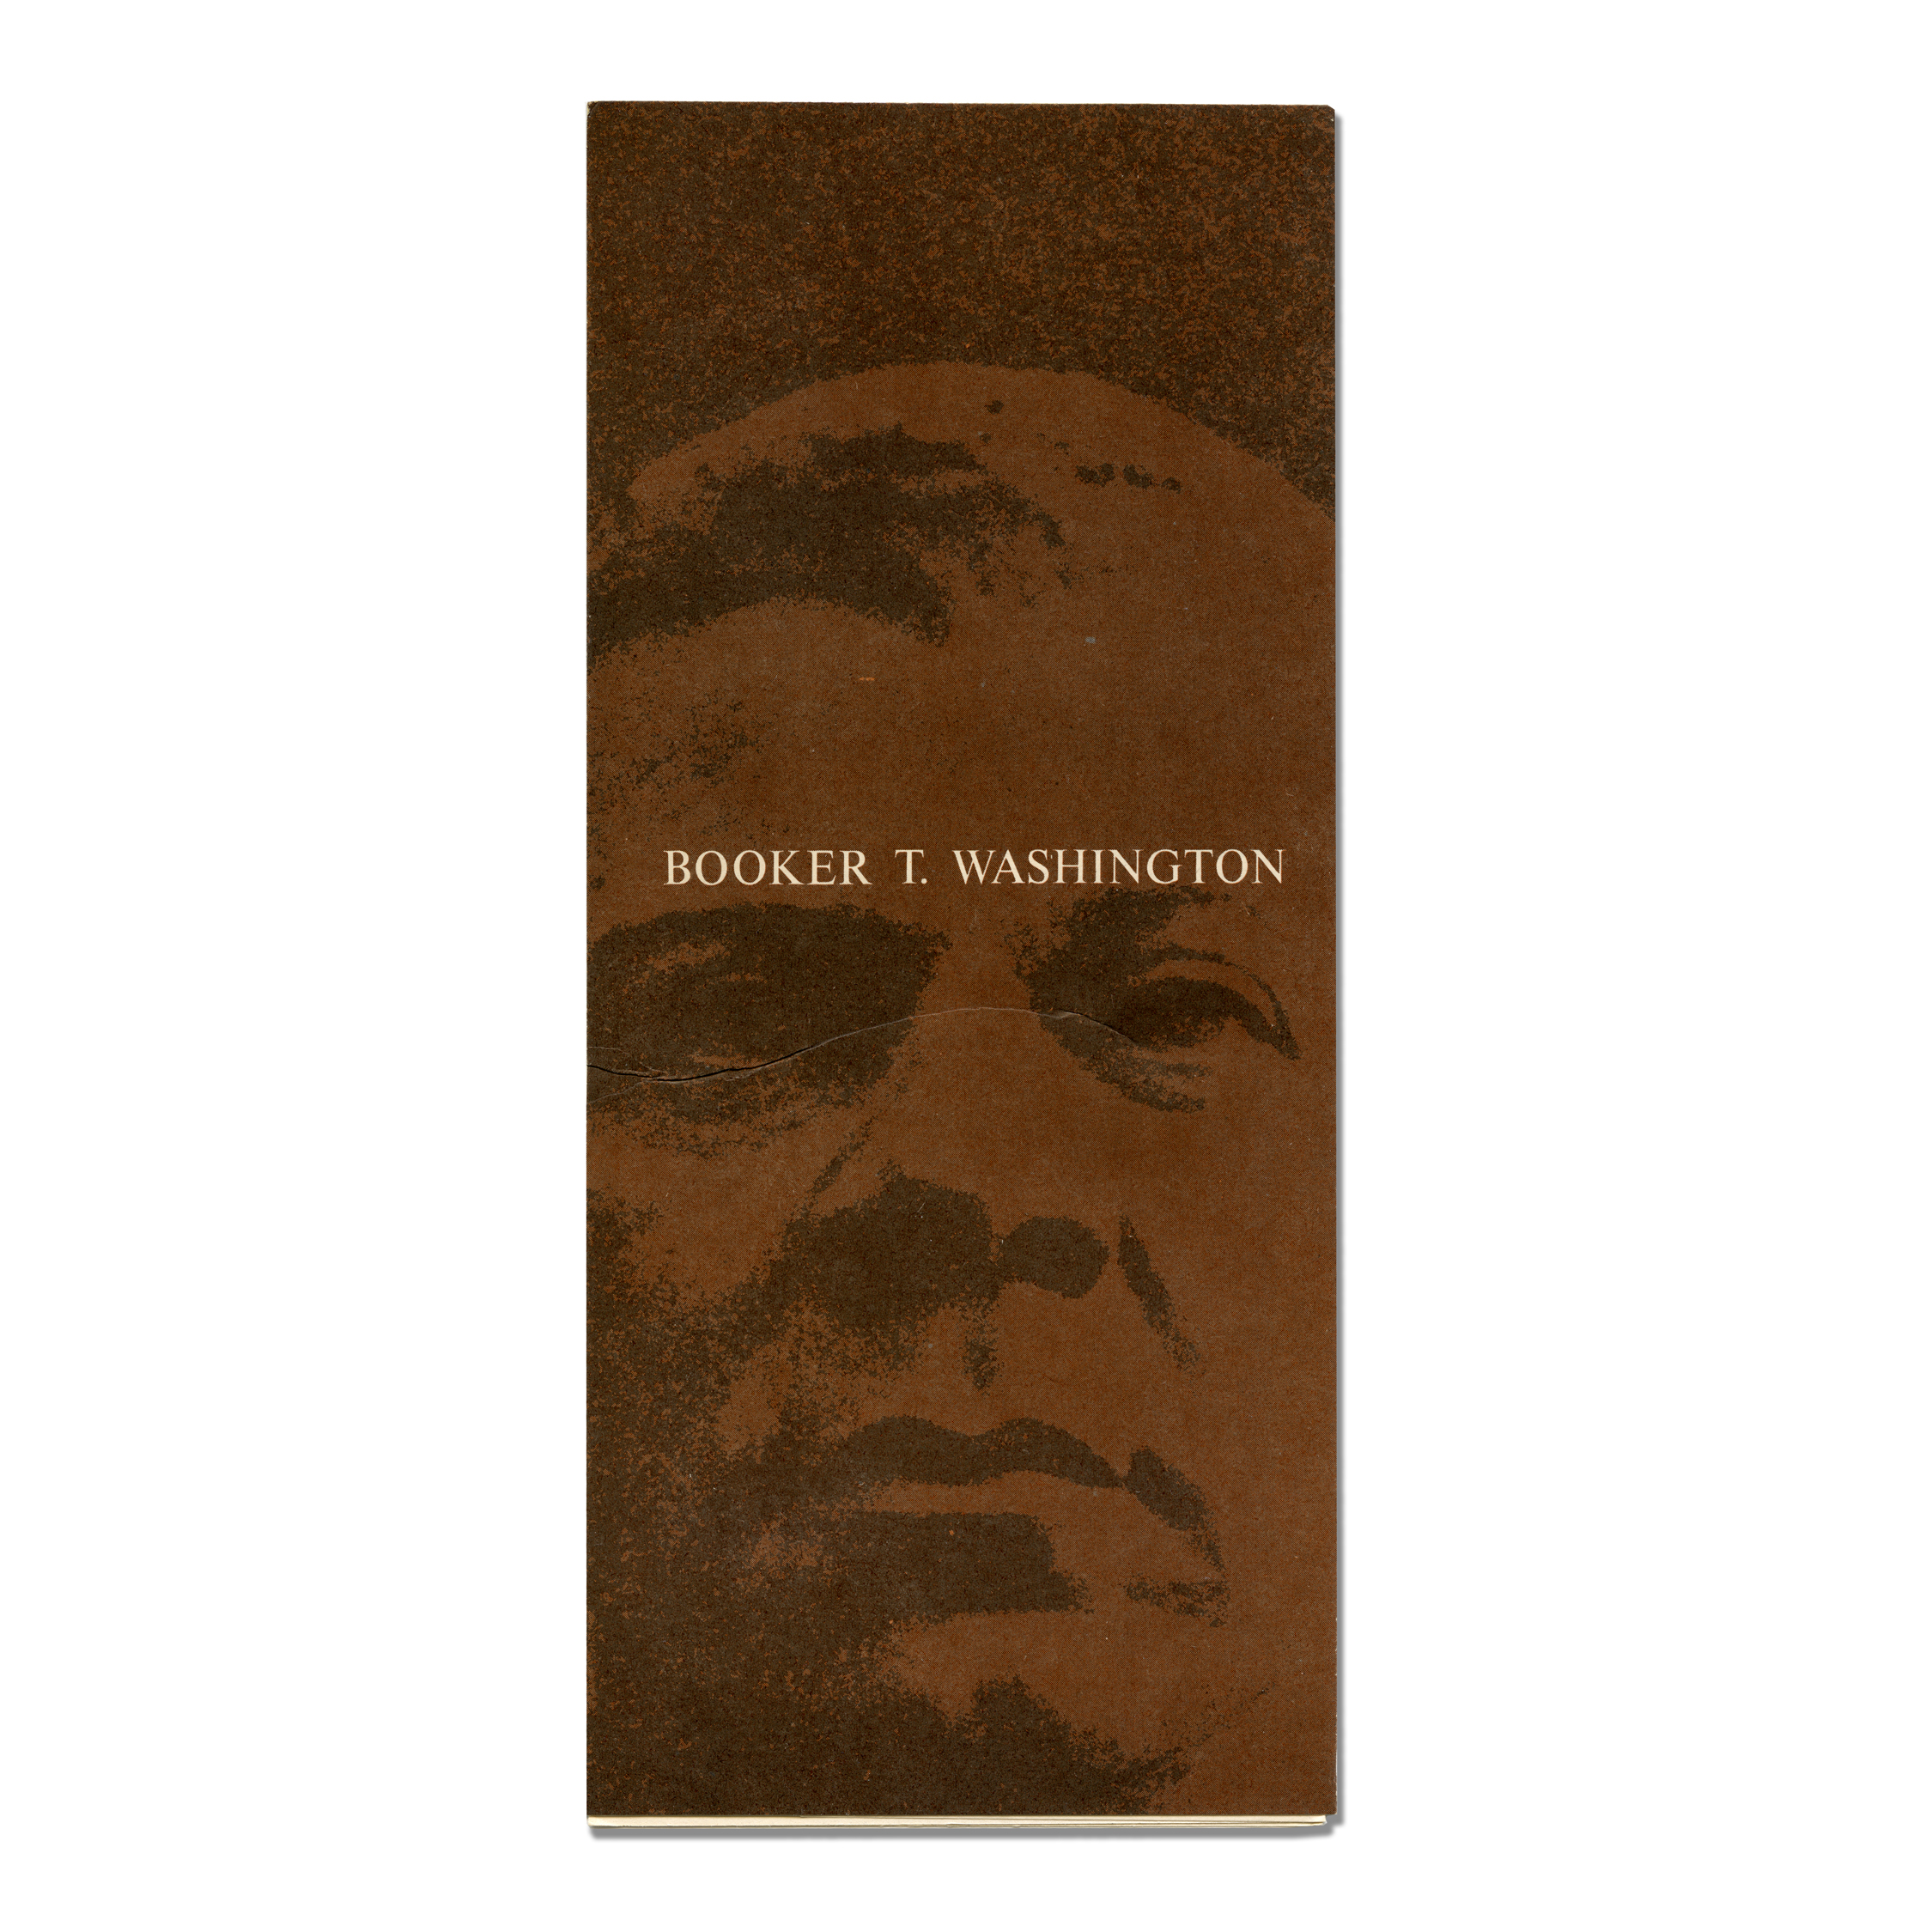 1968_booker_t_washington_national_monument_brochure.jpg